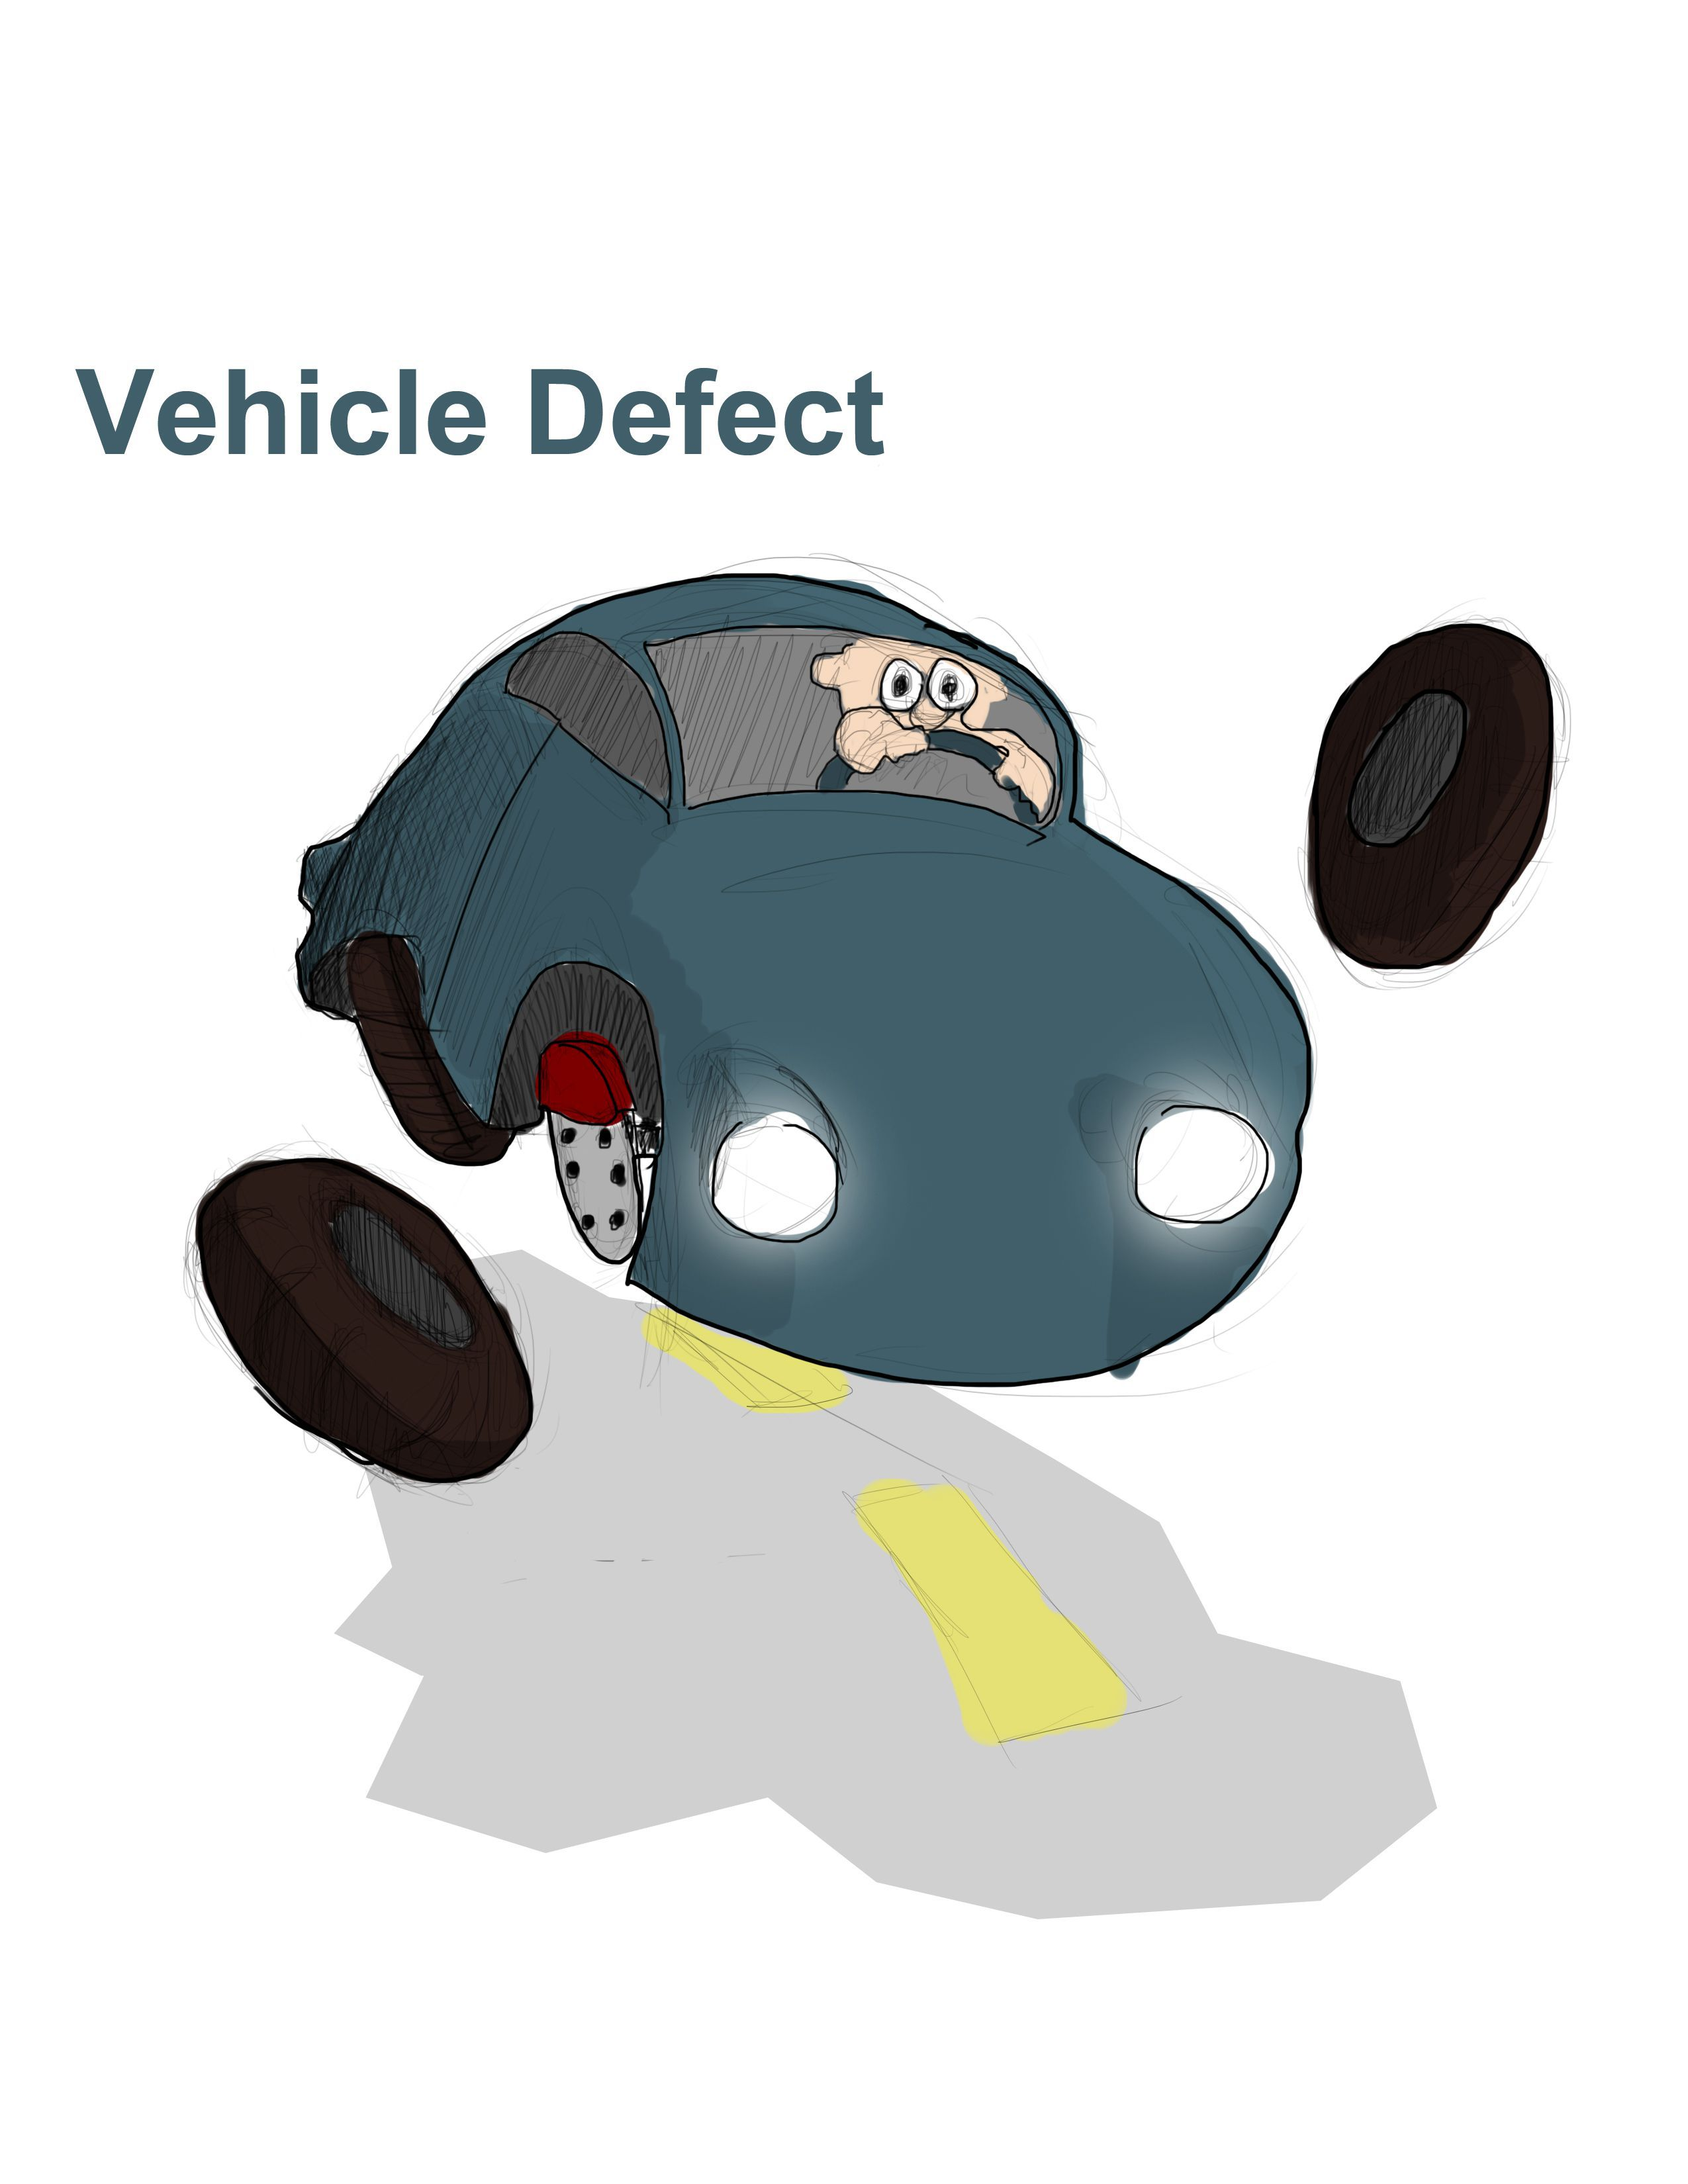 Vehicle defect attorney